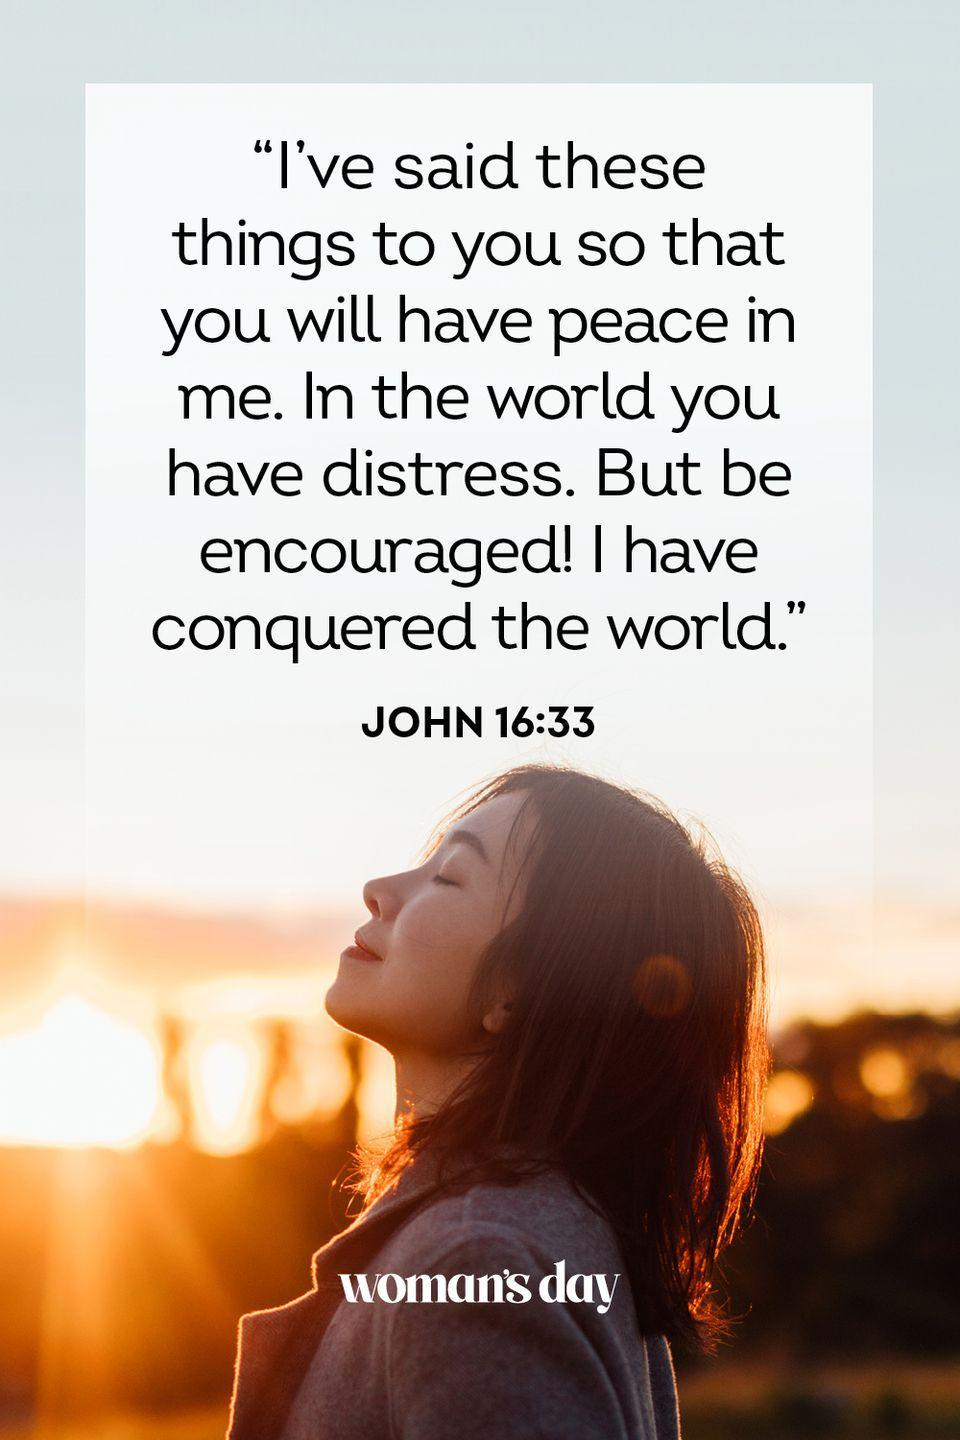 """<p>""""I've said these things to you so that you will have peace in me. In the world you have distress. But be encouraged! I have conquered the world."""" — John 16:33</p><p><strong>The Good News</strong>: In this life, there will be hardships, but they only last so long. Be at peace knowing that it'll all be over soon.</p>"""